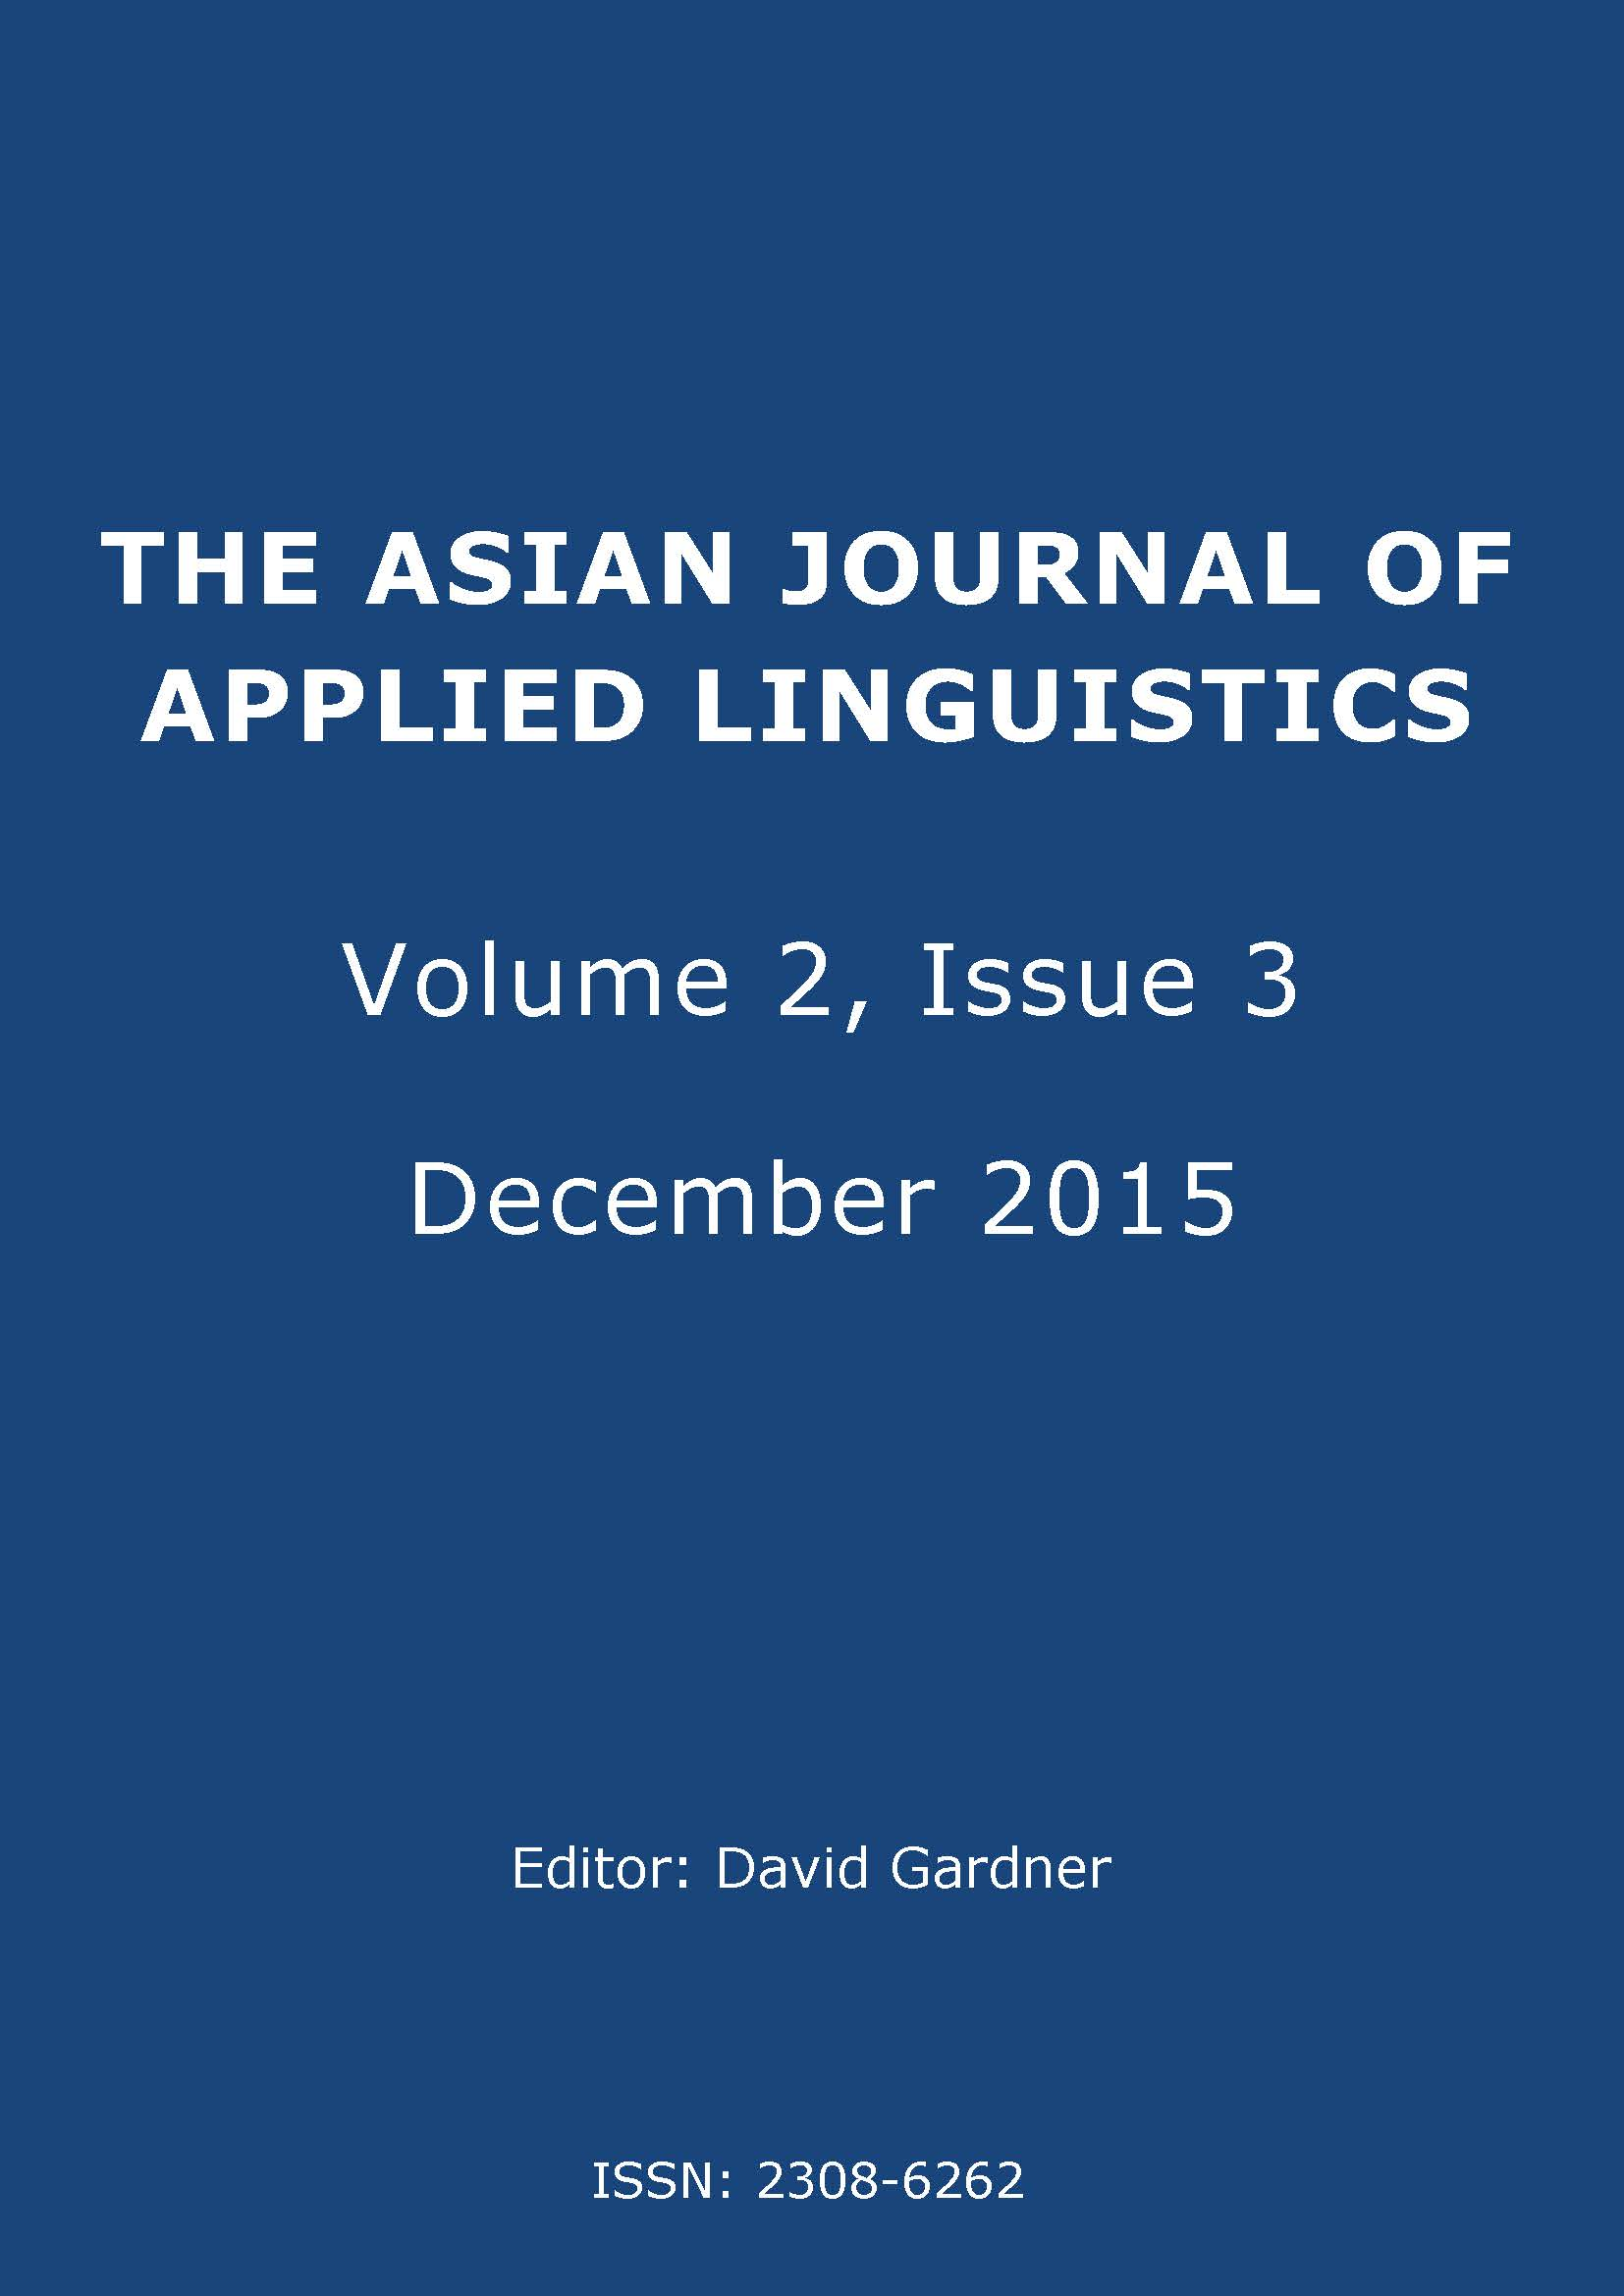 The Asian Journal of Applied Linguistics. Volume 2. Issue 3. December 2015